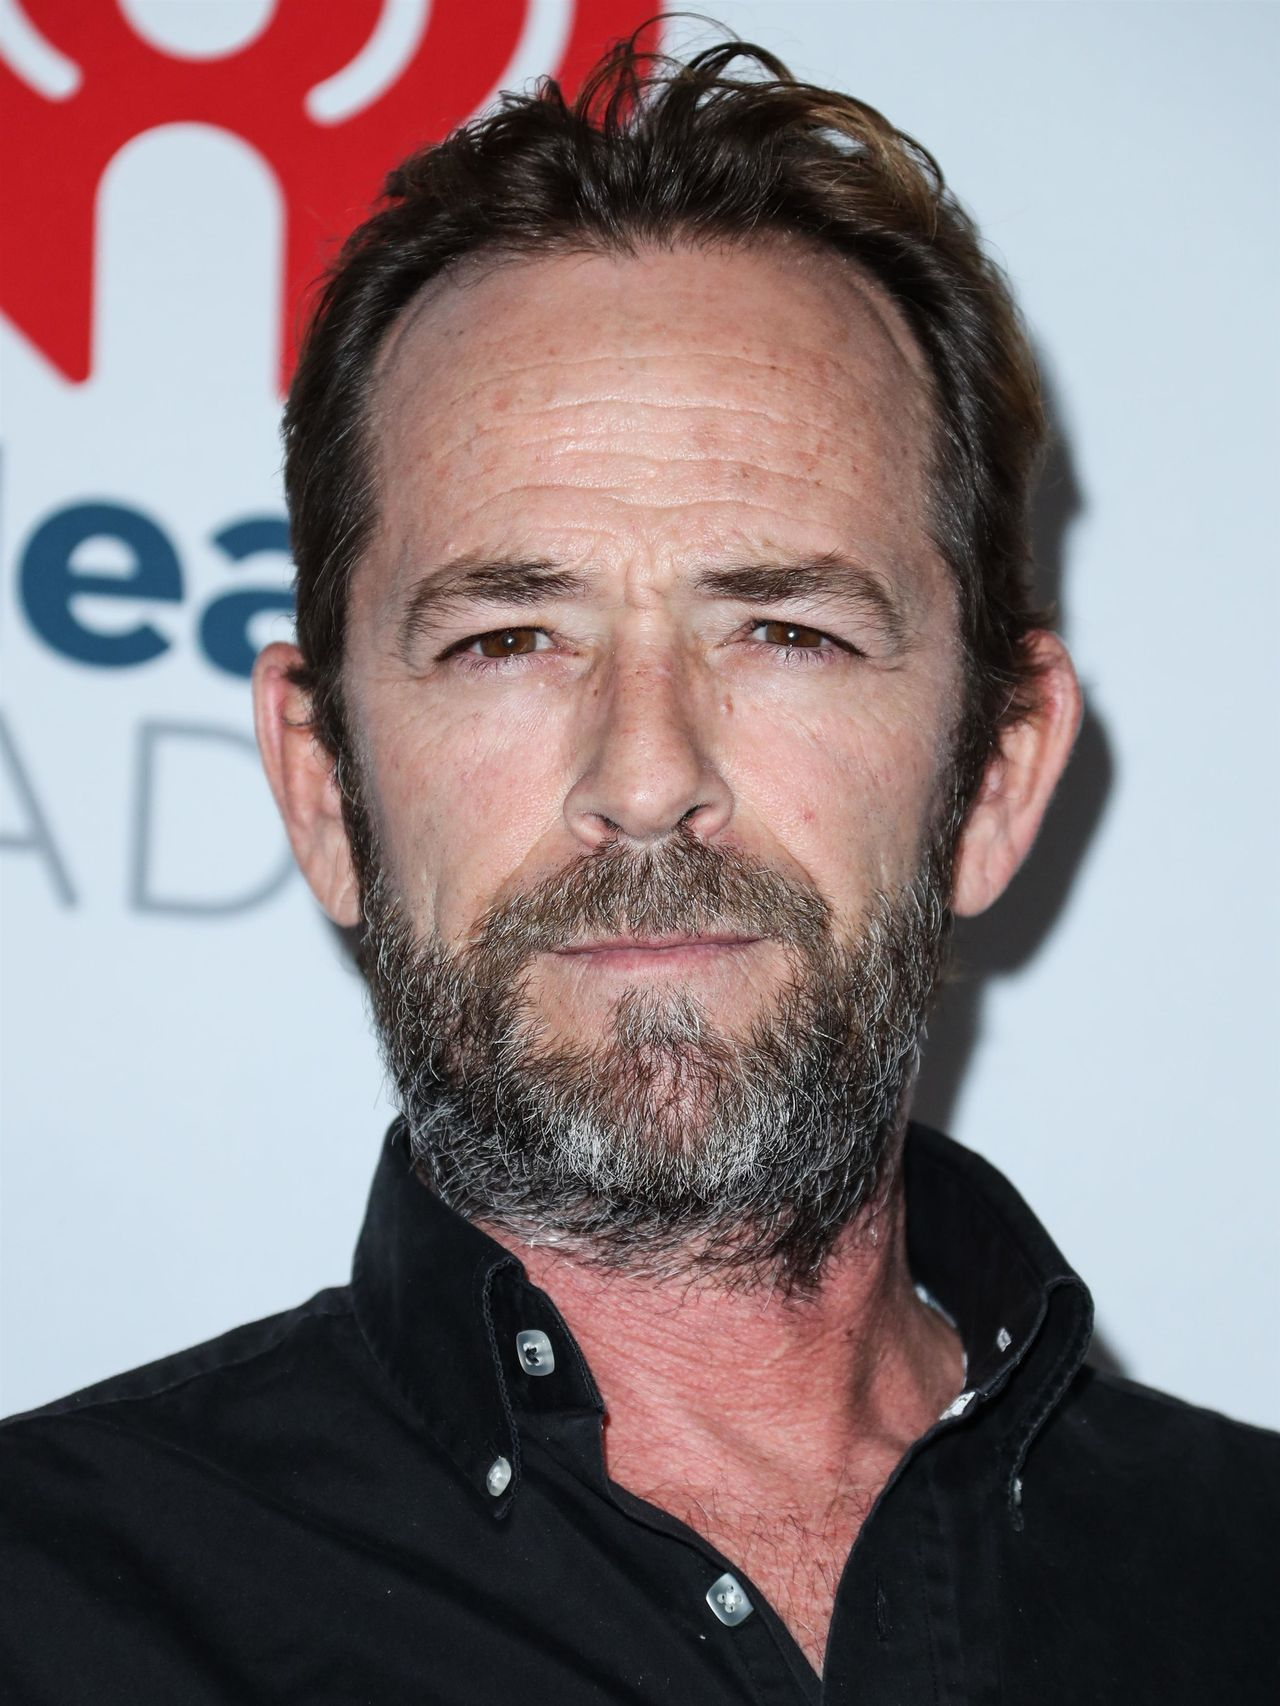 Luke Perry Hospitalized After Reportedly Suffering Stroke***FILE PHOTOS*** Luke Perry